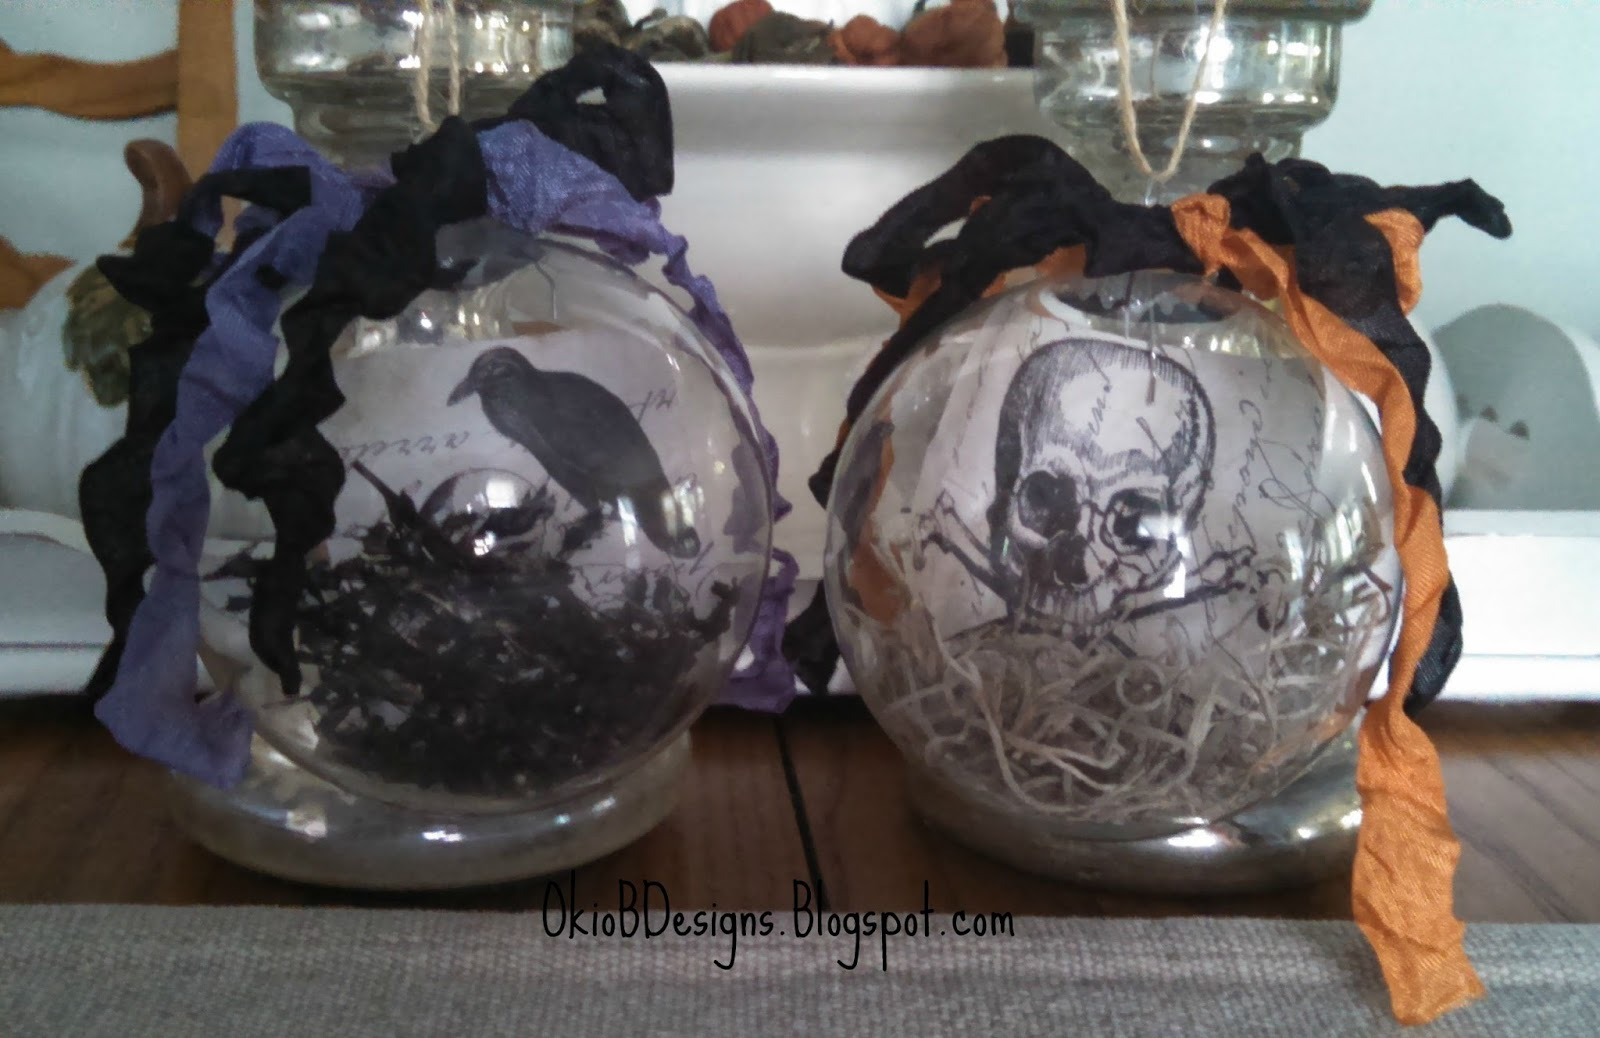 Halloween Ornaments - Okio B Designs